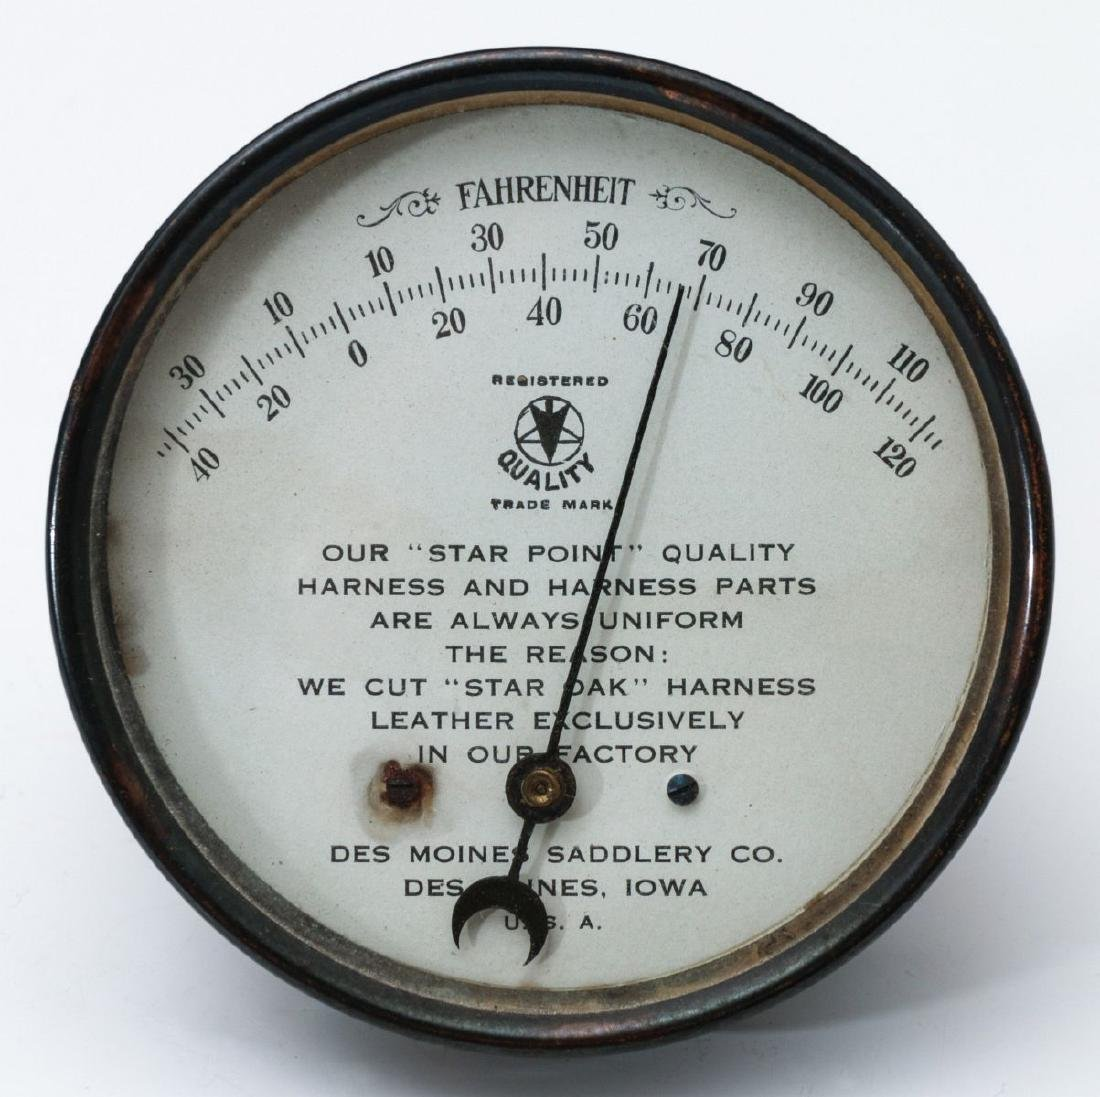 DES MOINES SADDLERY CO. ADVERTISING THERMOMETER